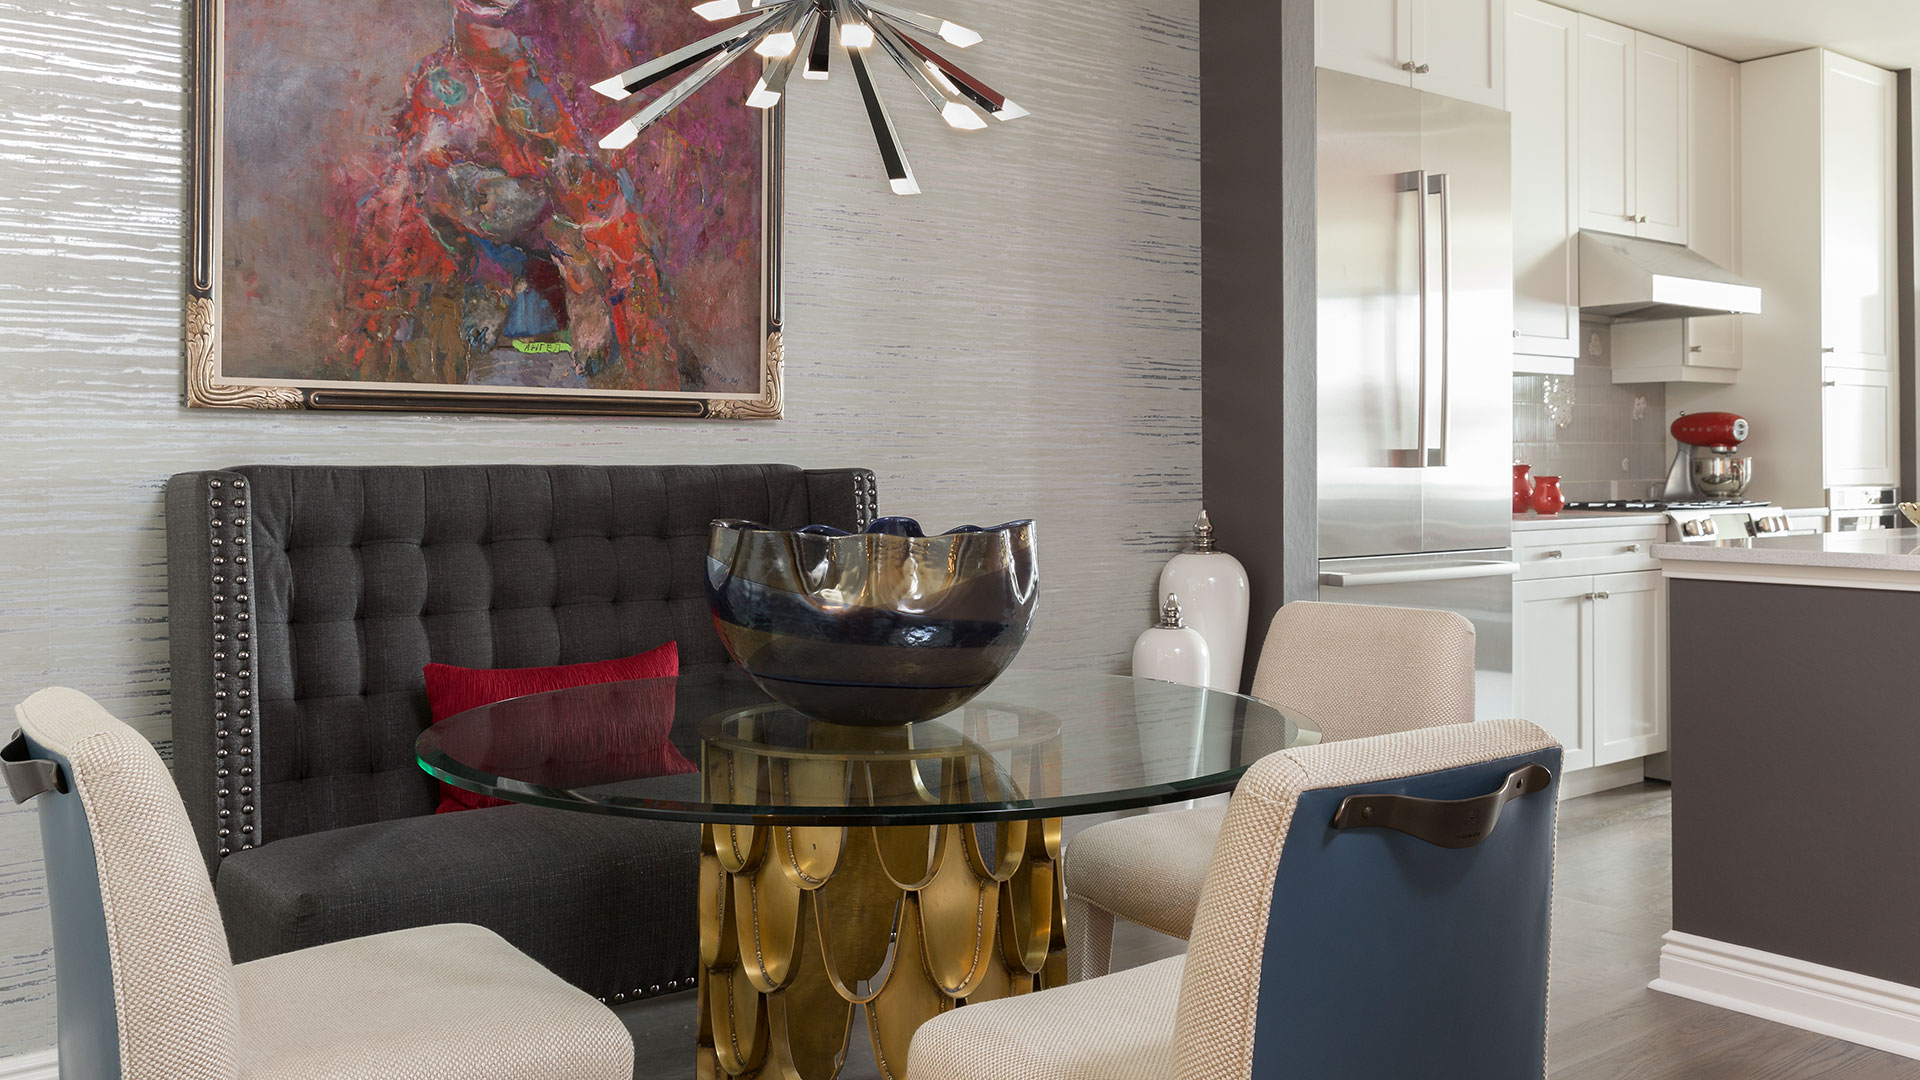 06967735b8da9 Red Bank Interior Design: Interior Design, Commercial Design and Event  Design specialists in New York , NY, Holmdel and Red Bank